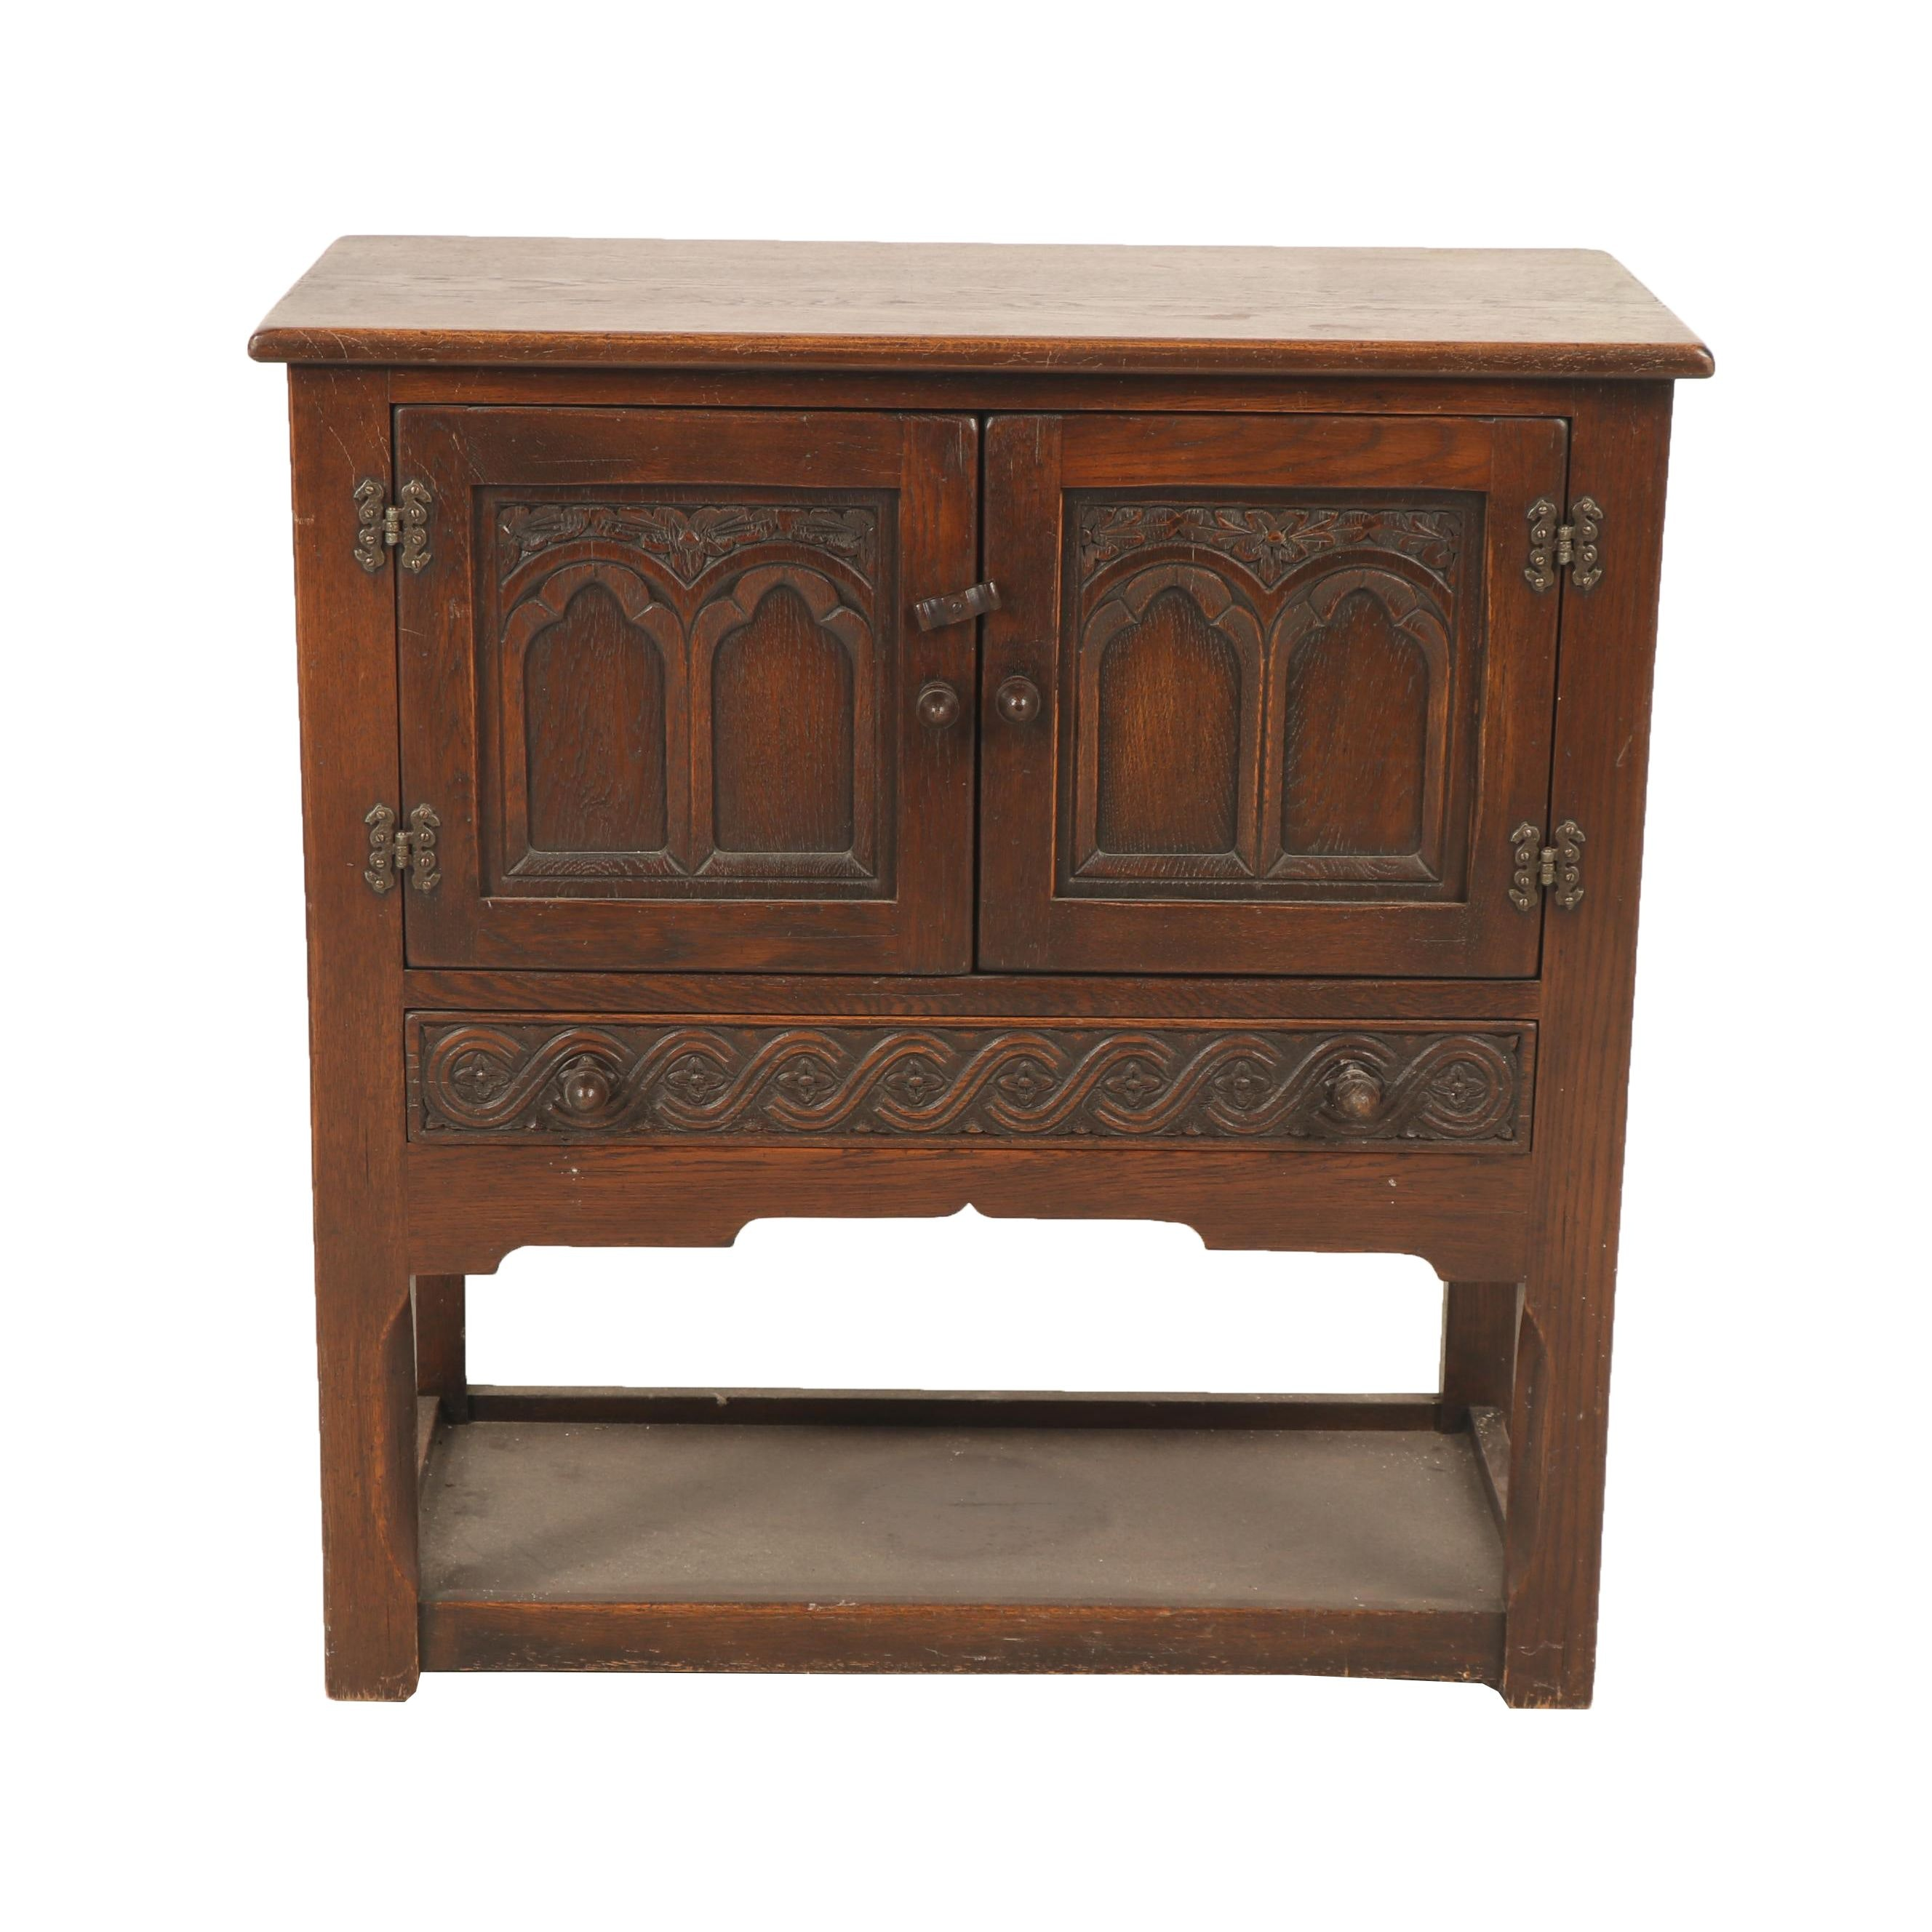 Jacobean Revival Style Carved Oak Cabinet with Drawer, Early 20th Century